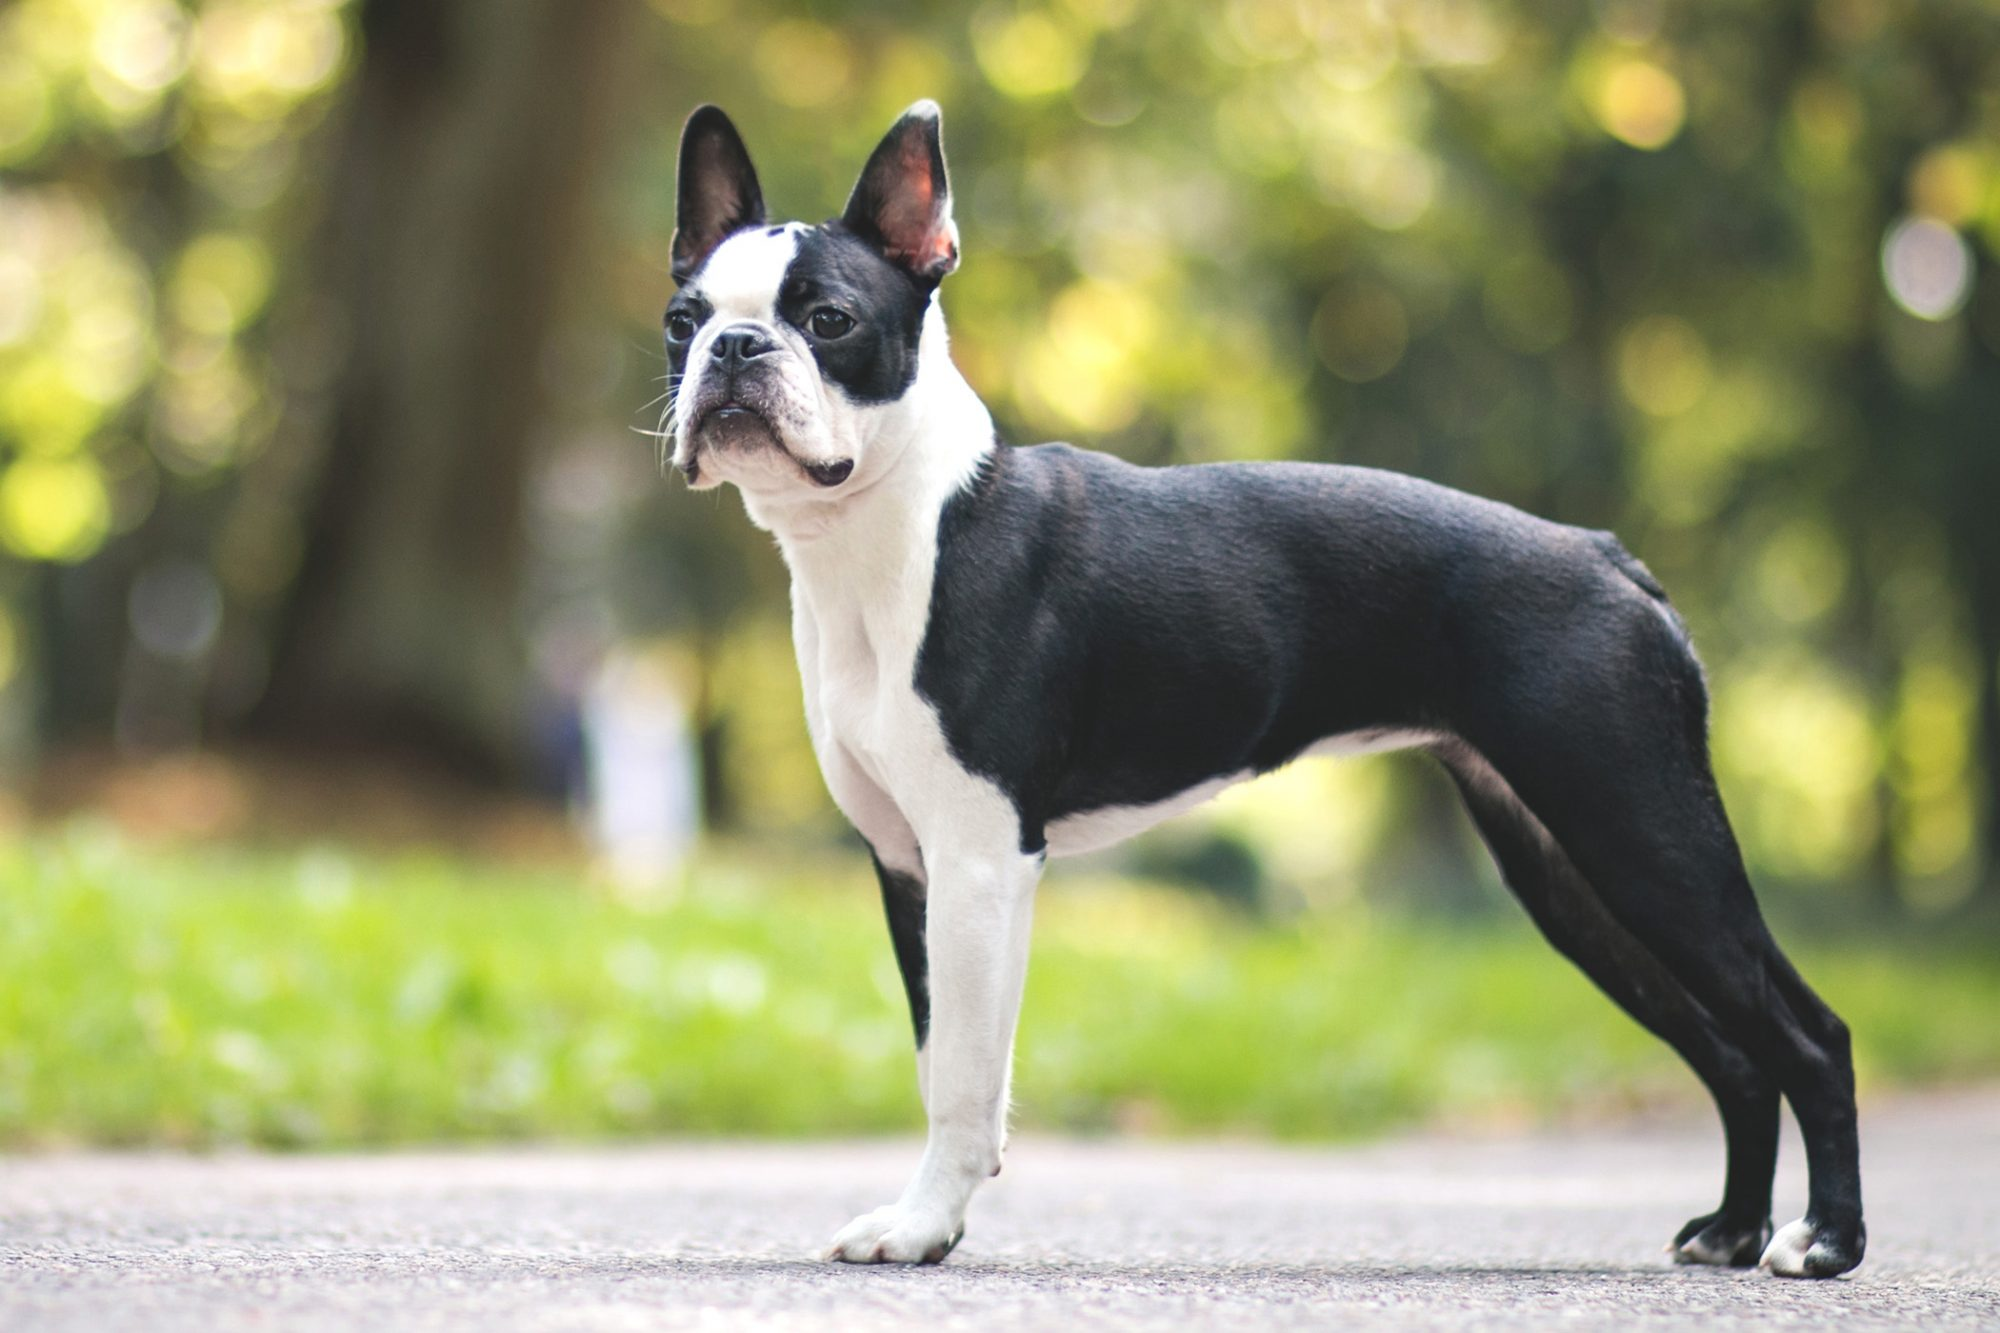 White and black boston terrier stands on sidewalk